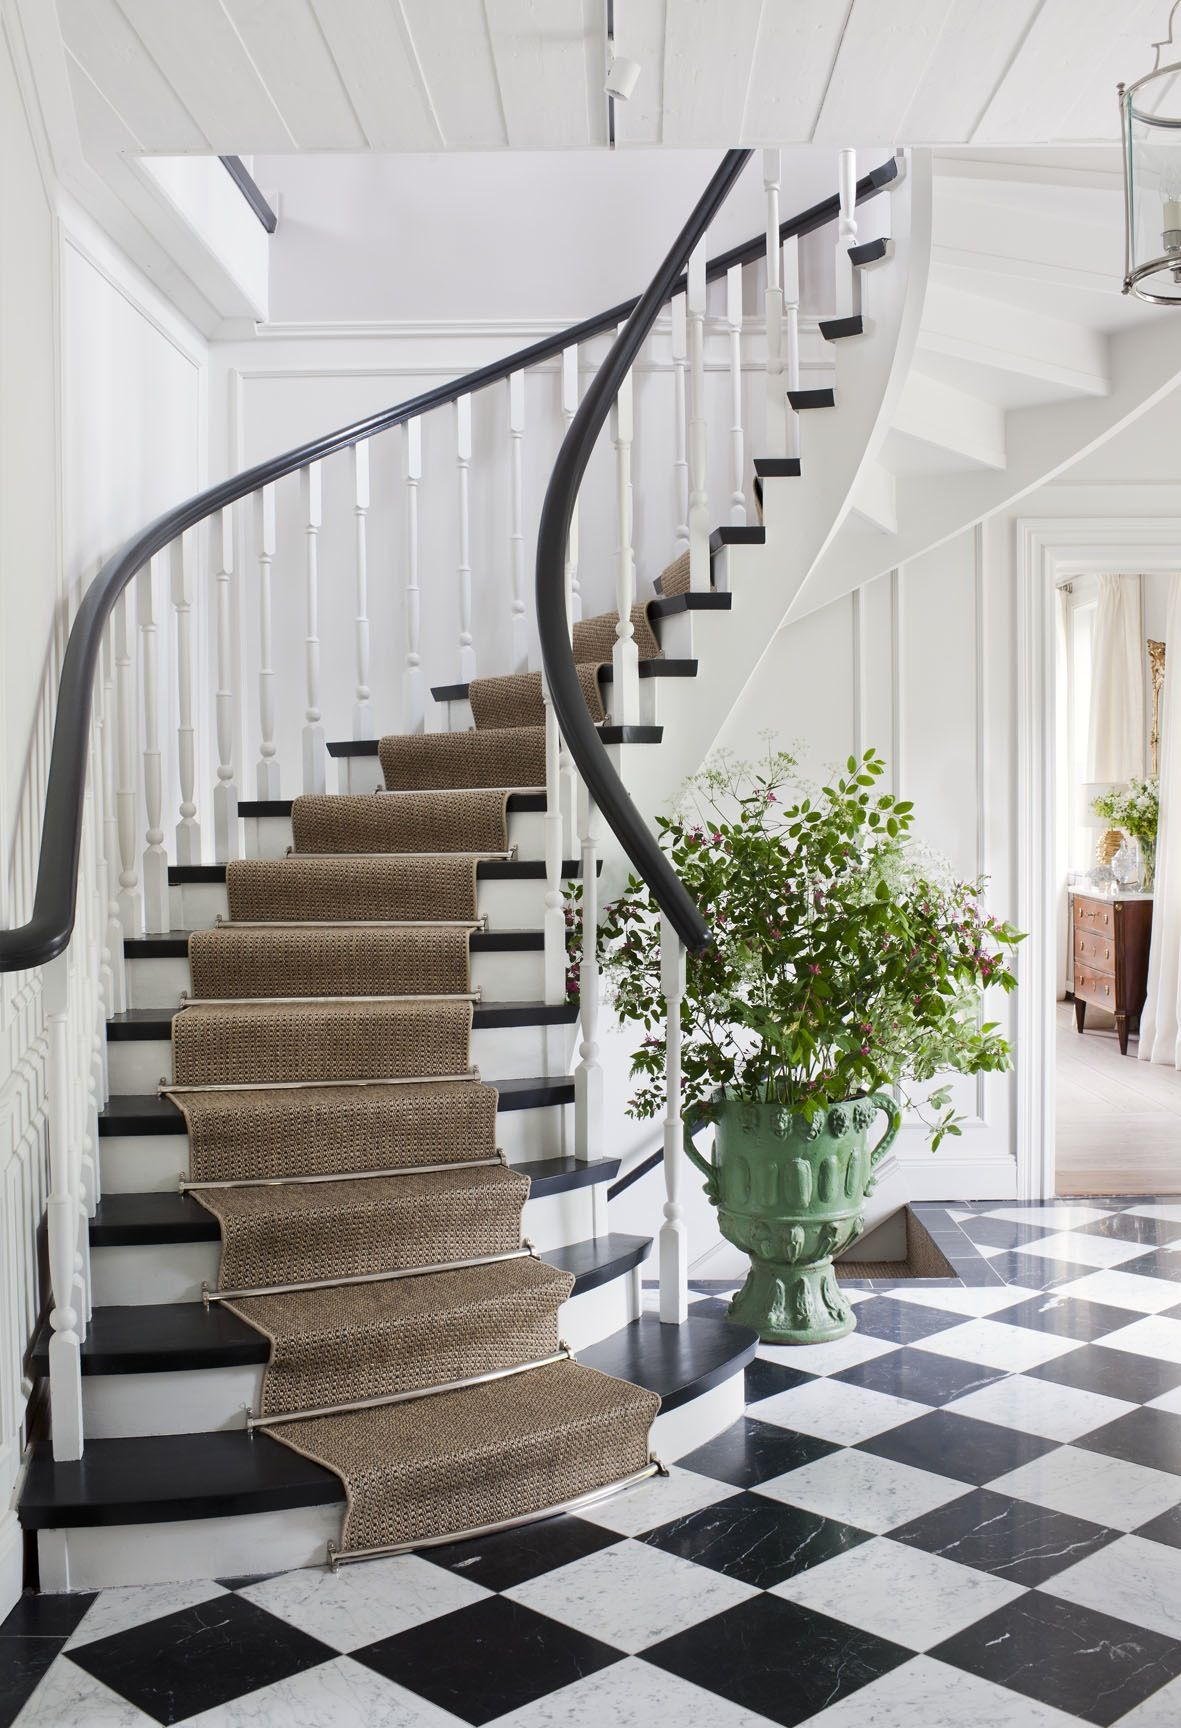 Runner In Stairs Black And White Marble Floor Photo Anne